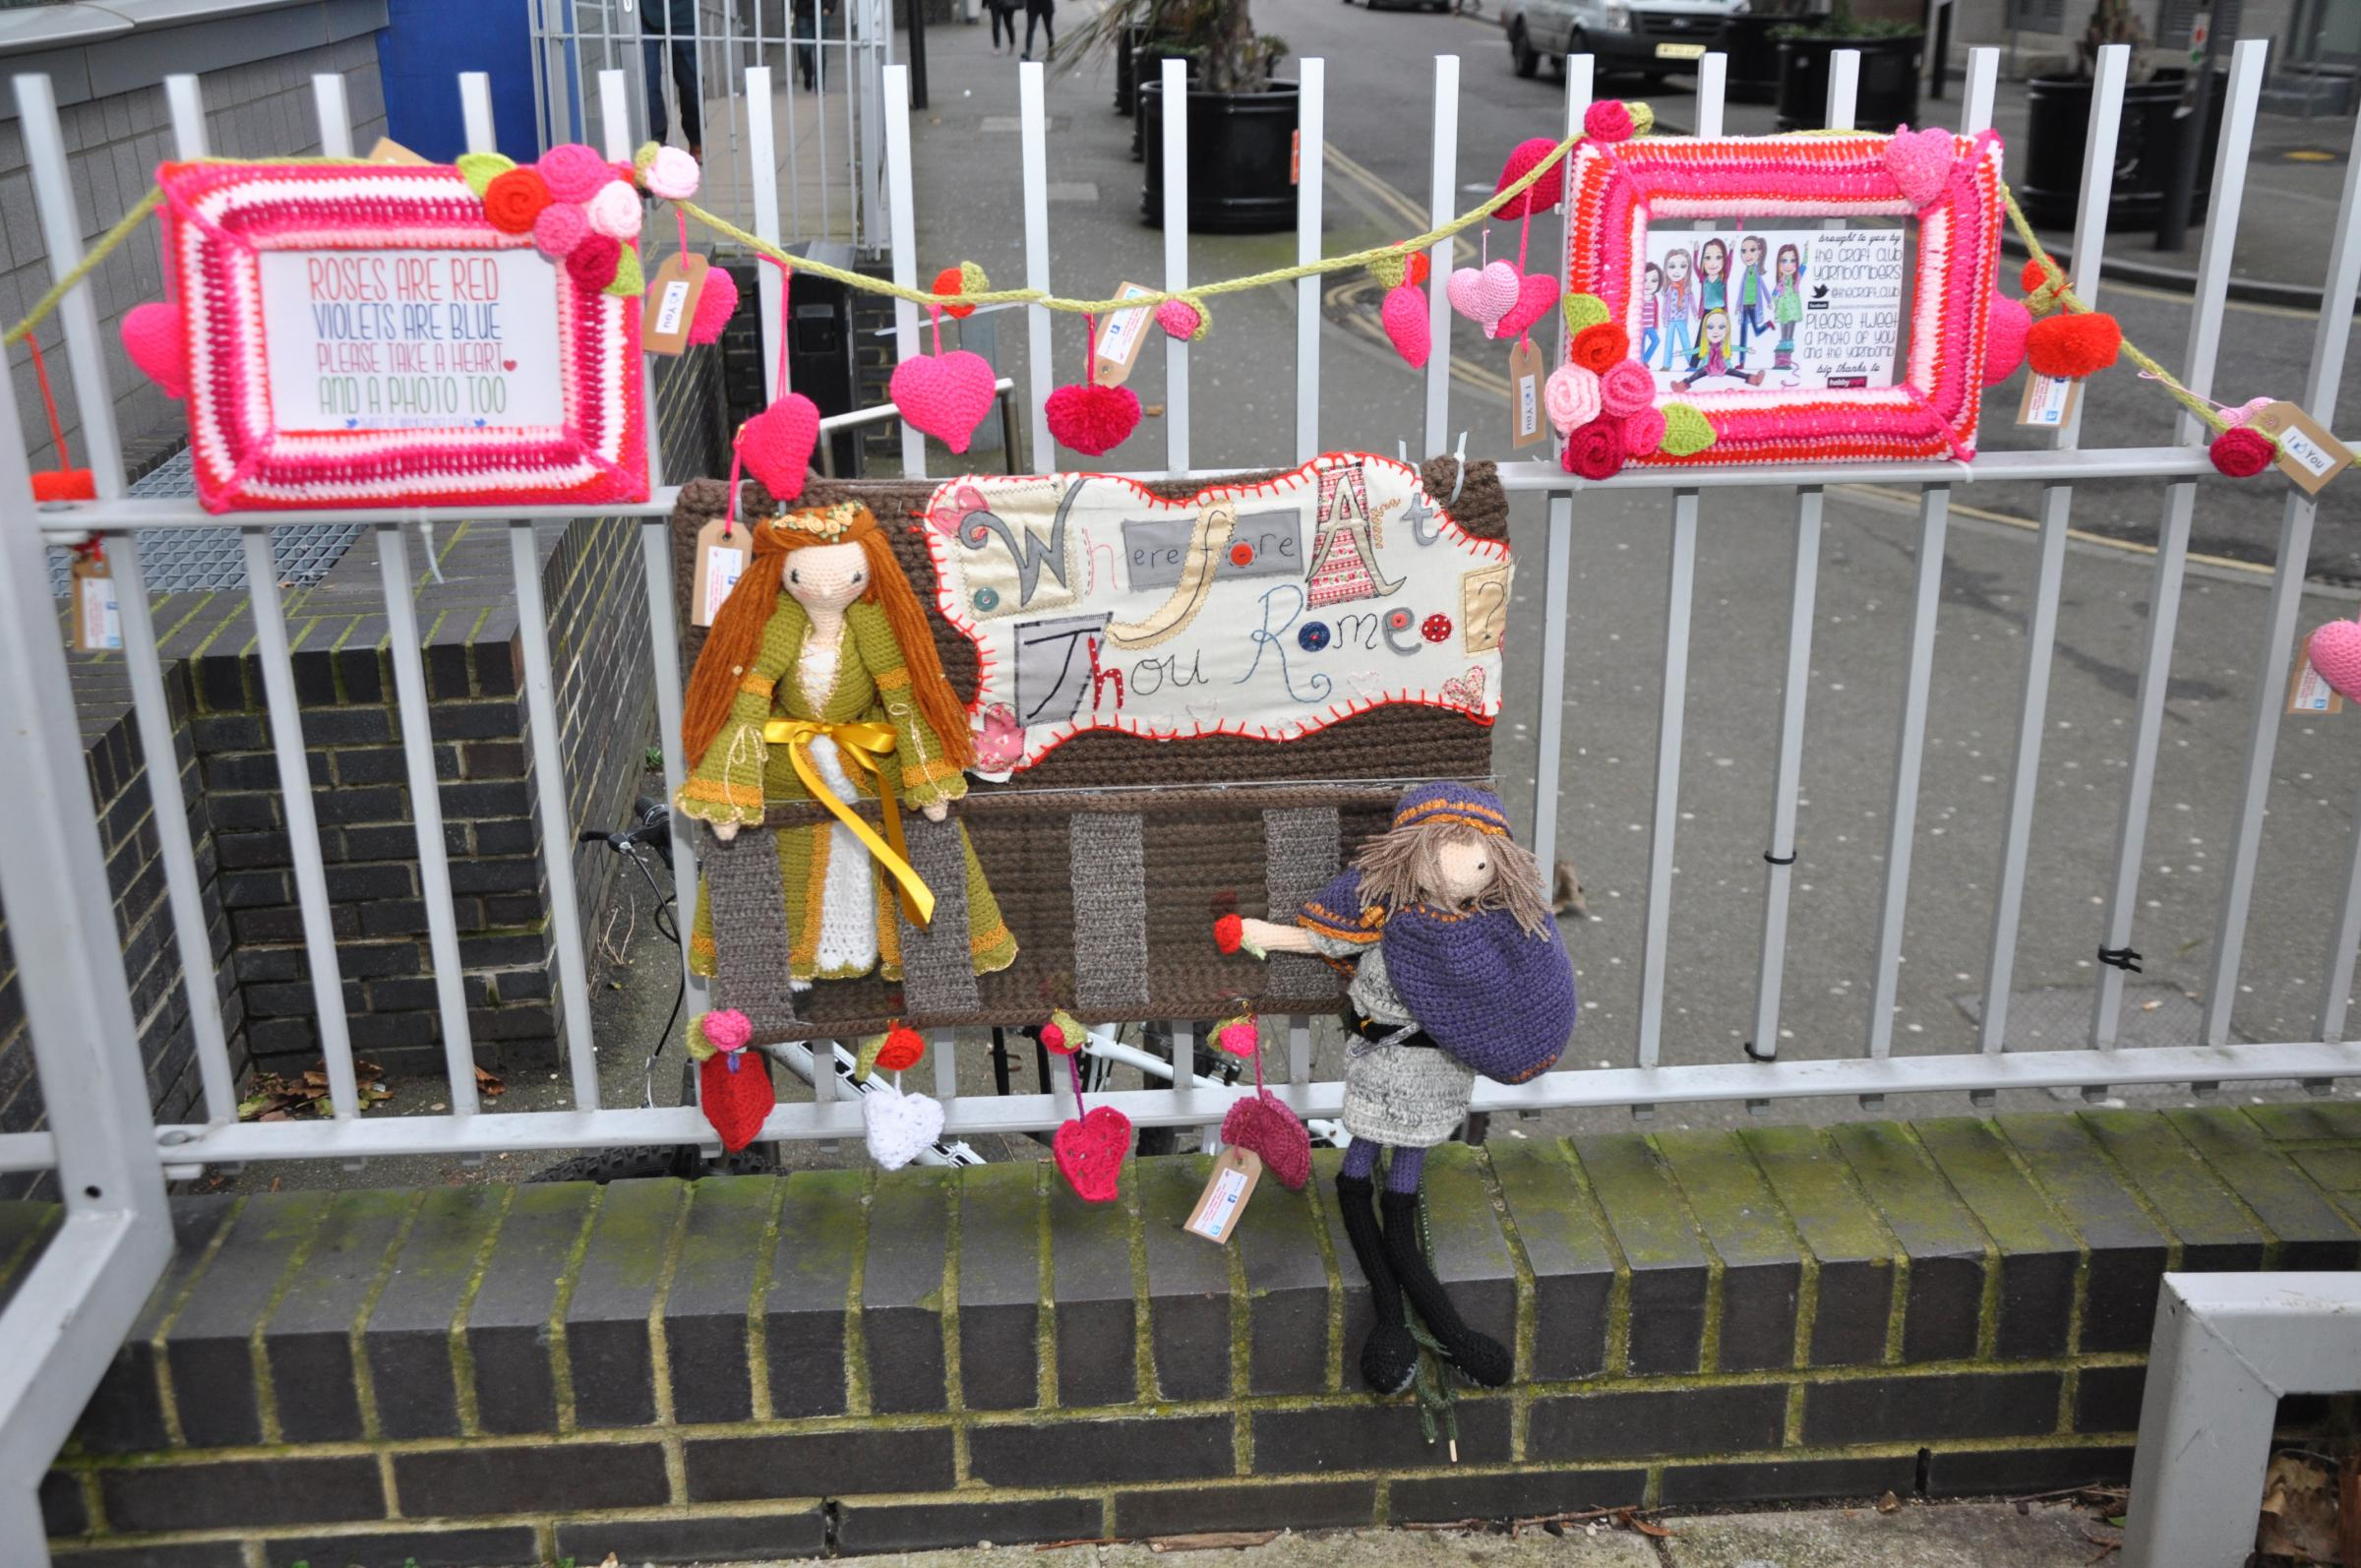 We do love a good yarn! Knitting ninjas create romantic Valentine's scene outside Southend college